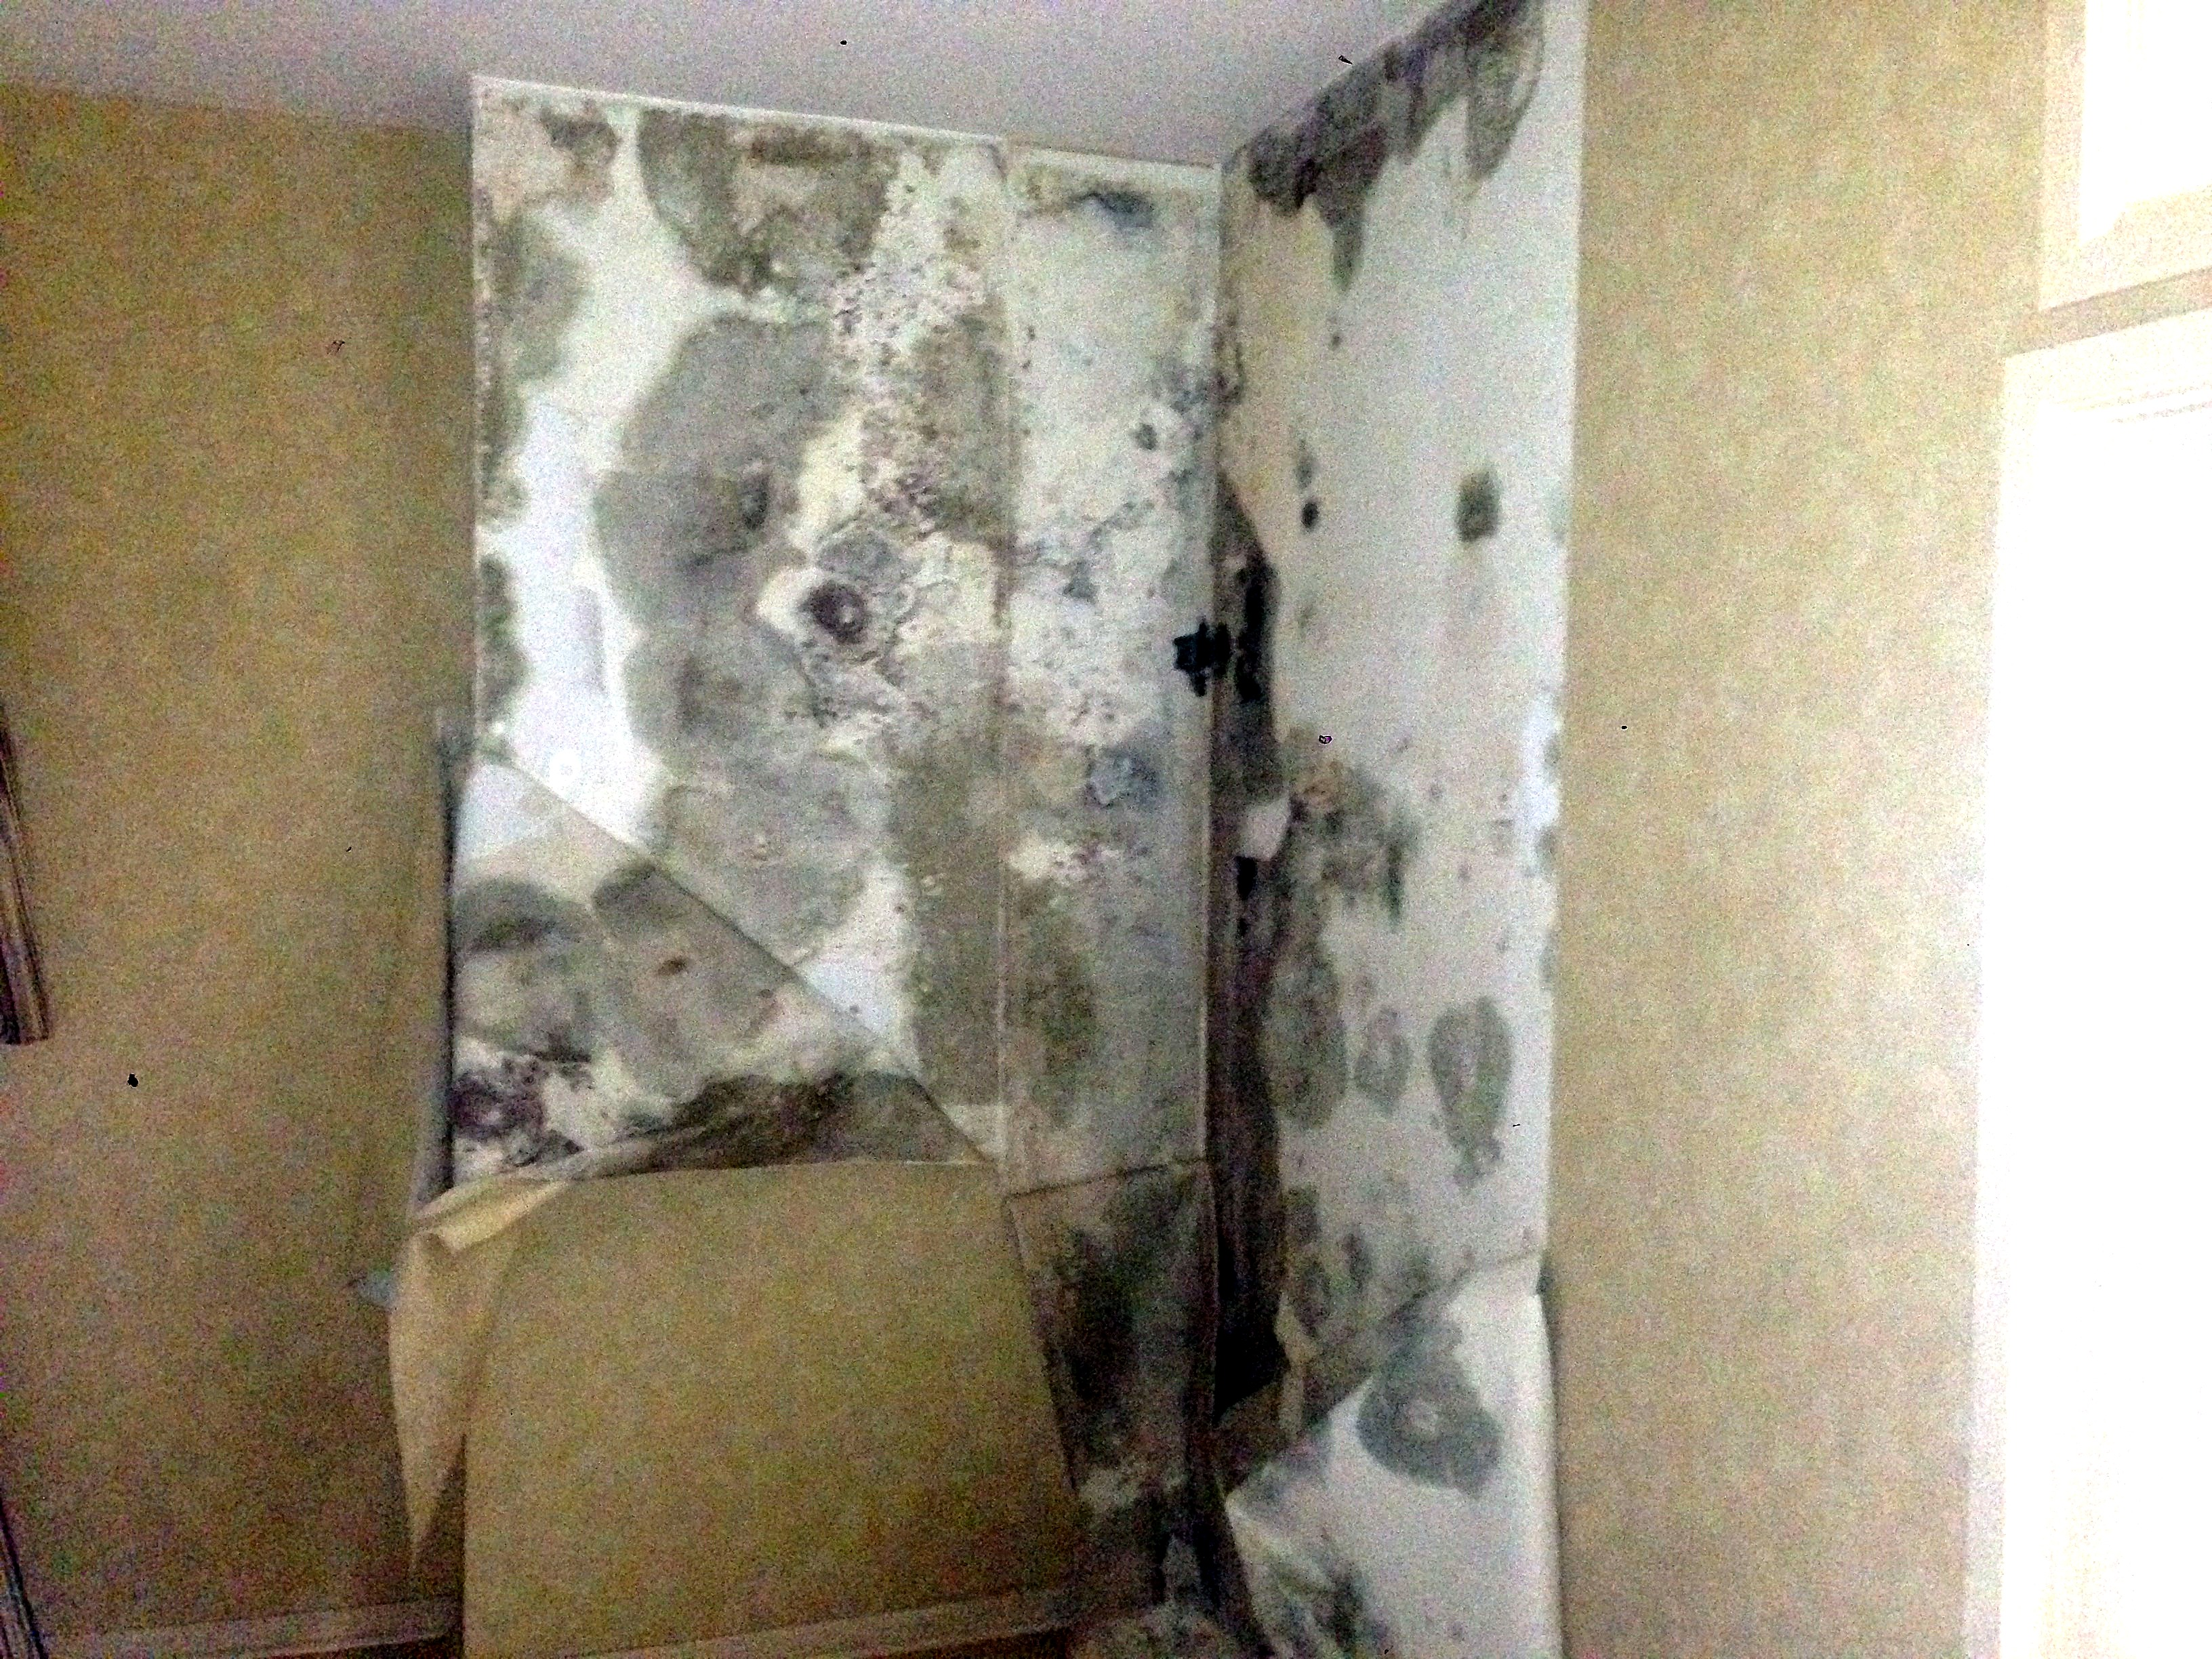 Mold behind wall paper